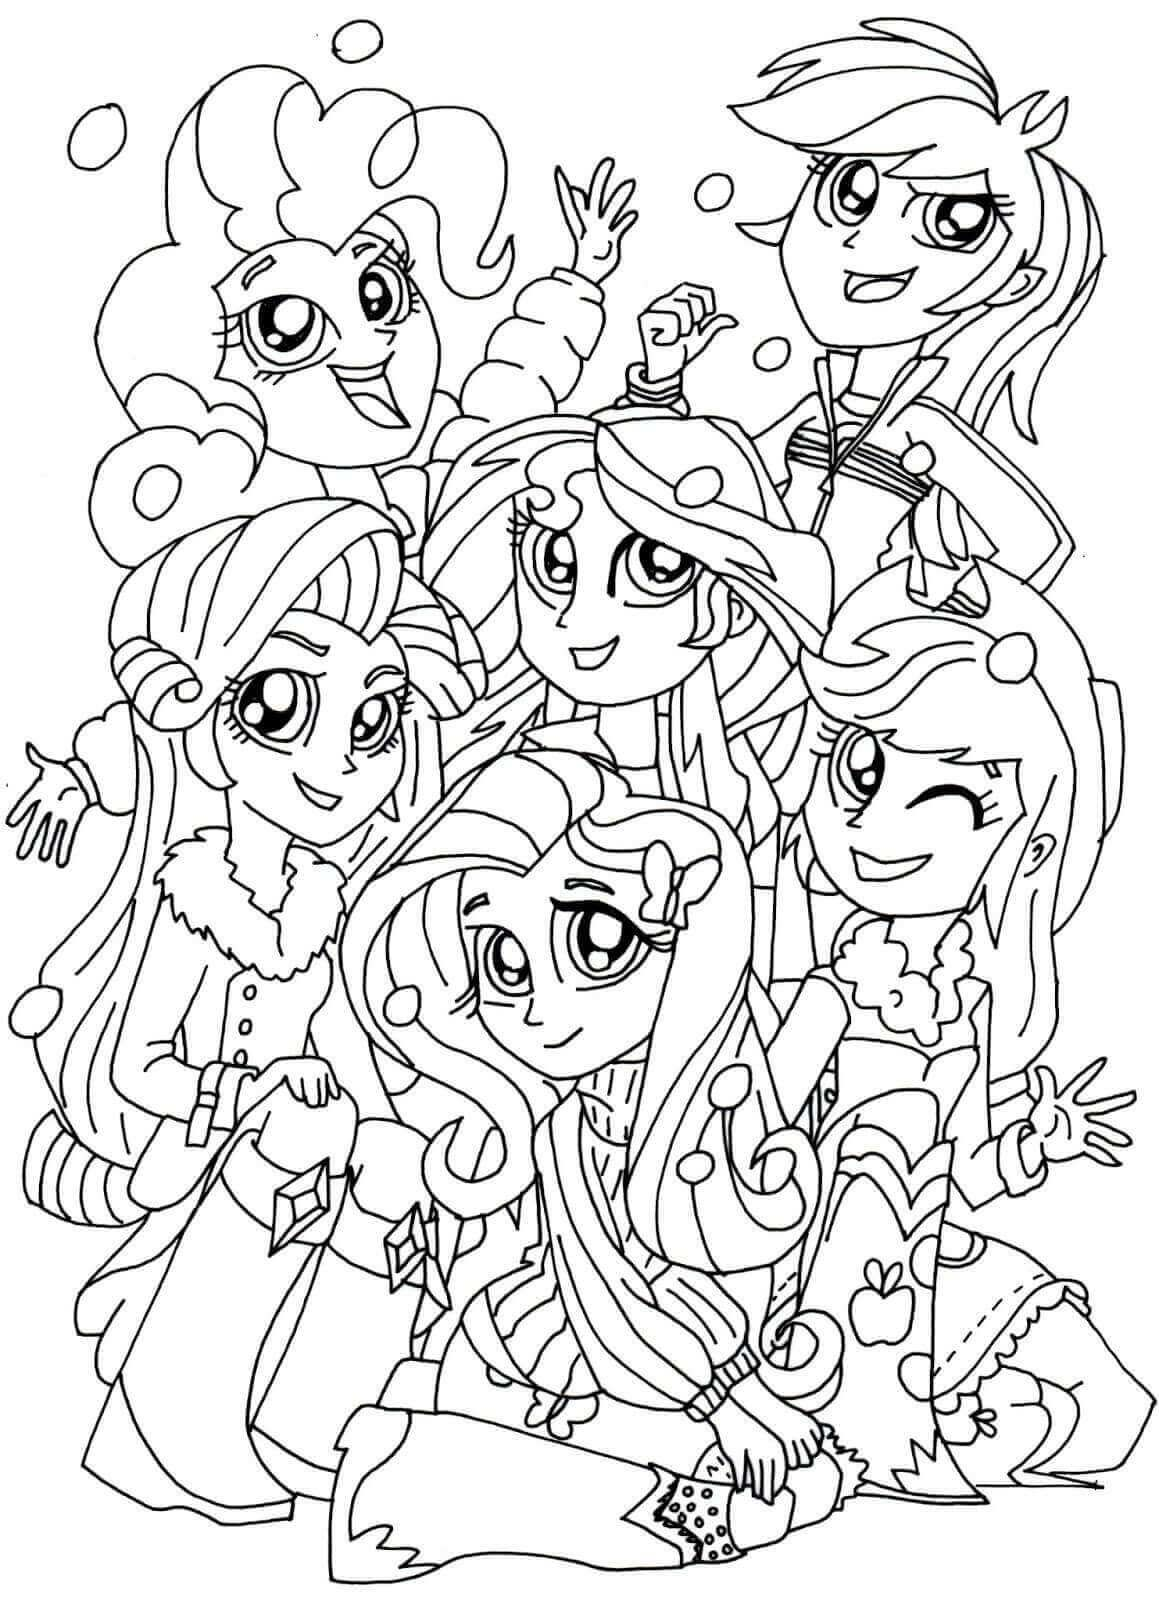 15 Printable My Little Pony Equestria Girls Coloring Pages My